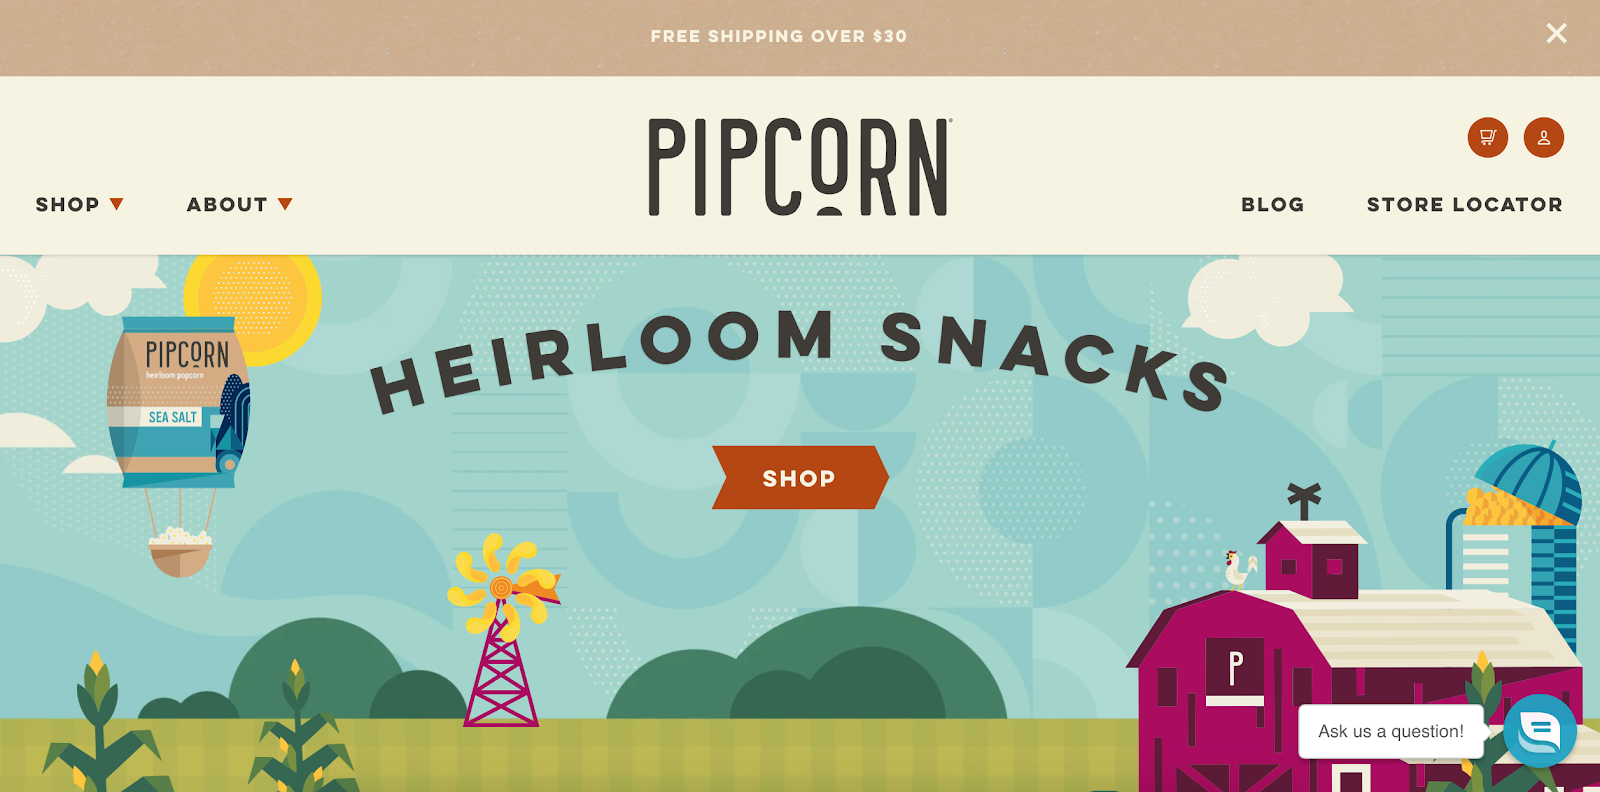 Pipcorn Shopify Store Example